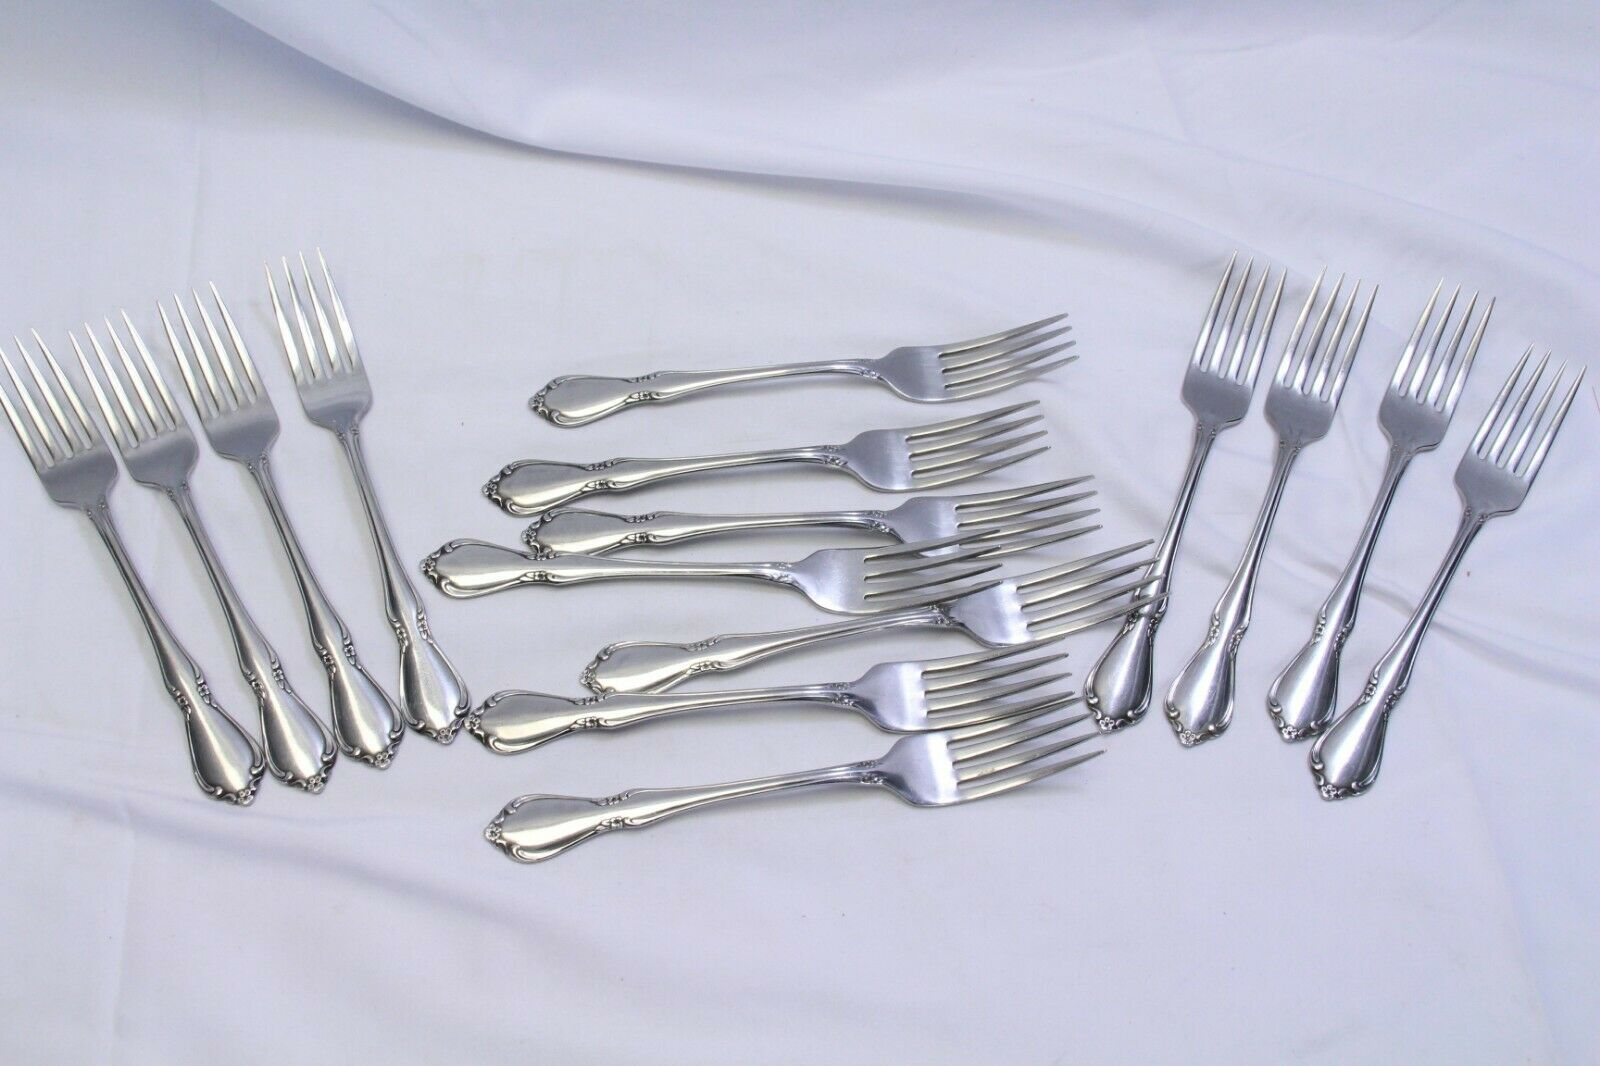 Oneidacraft Deluxe inoxydable Chateau dinner forks 7.25  Lot de 15